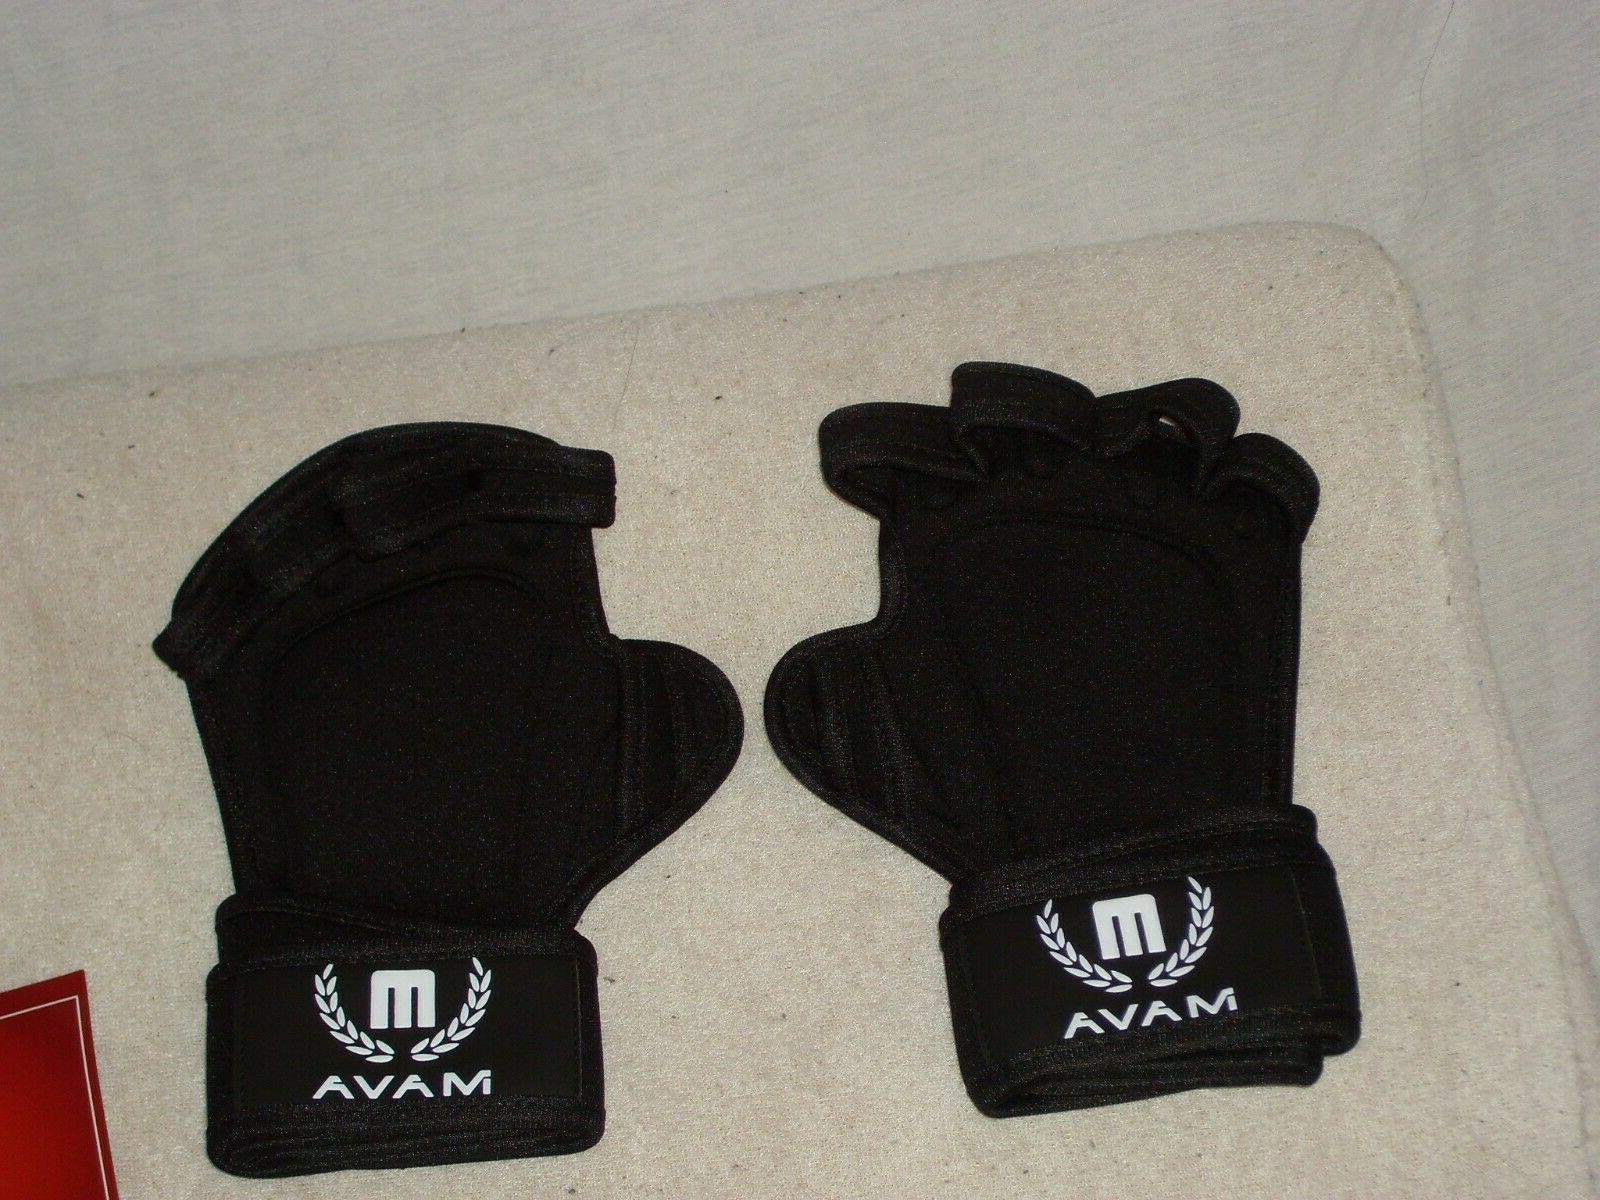 Mava Sports Ventilated Training Support Gloves Wrap